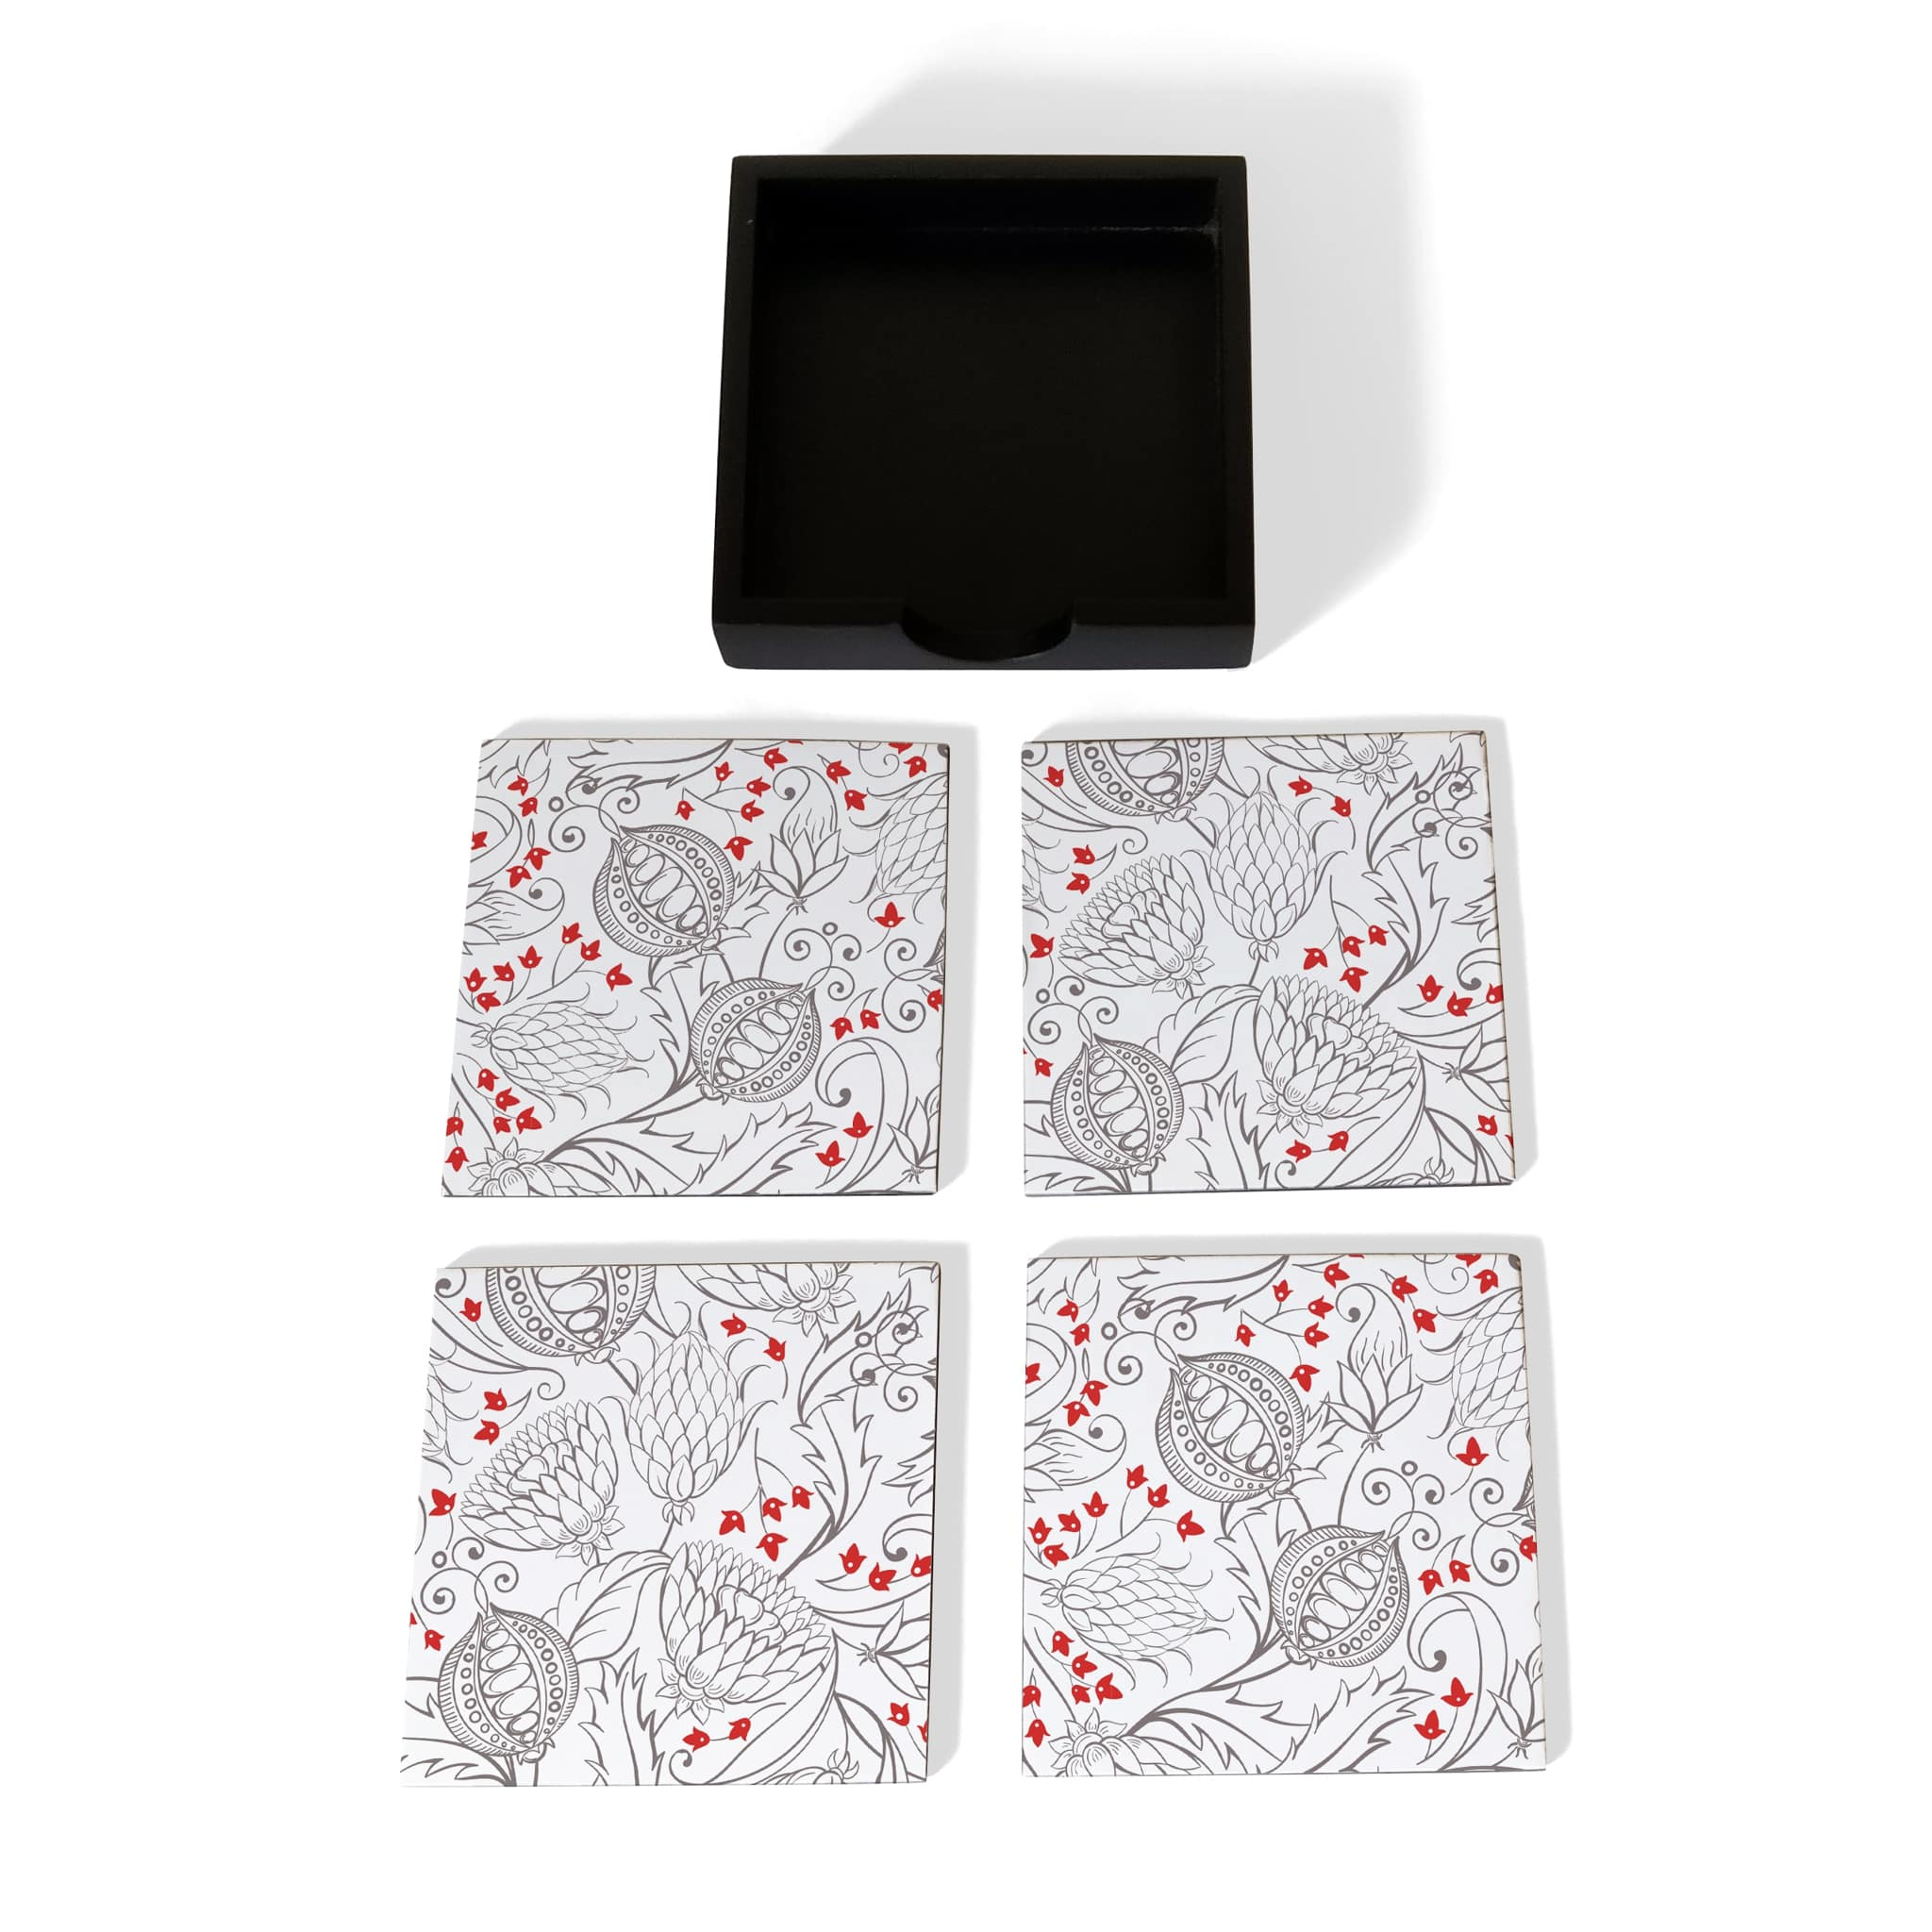 Pomegranate Coaster Set with Box